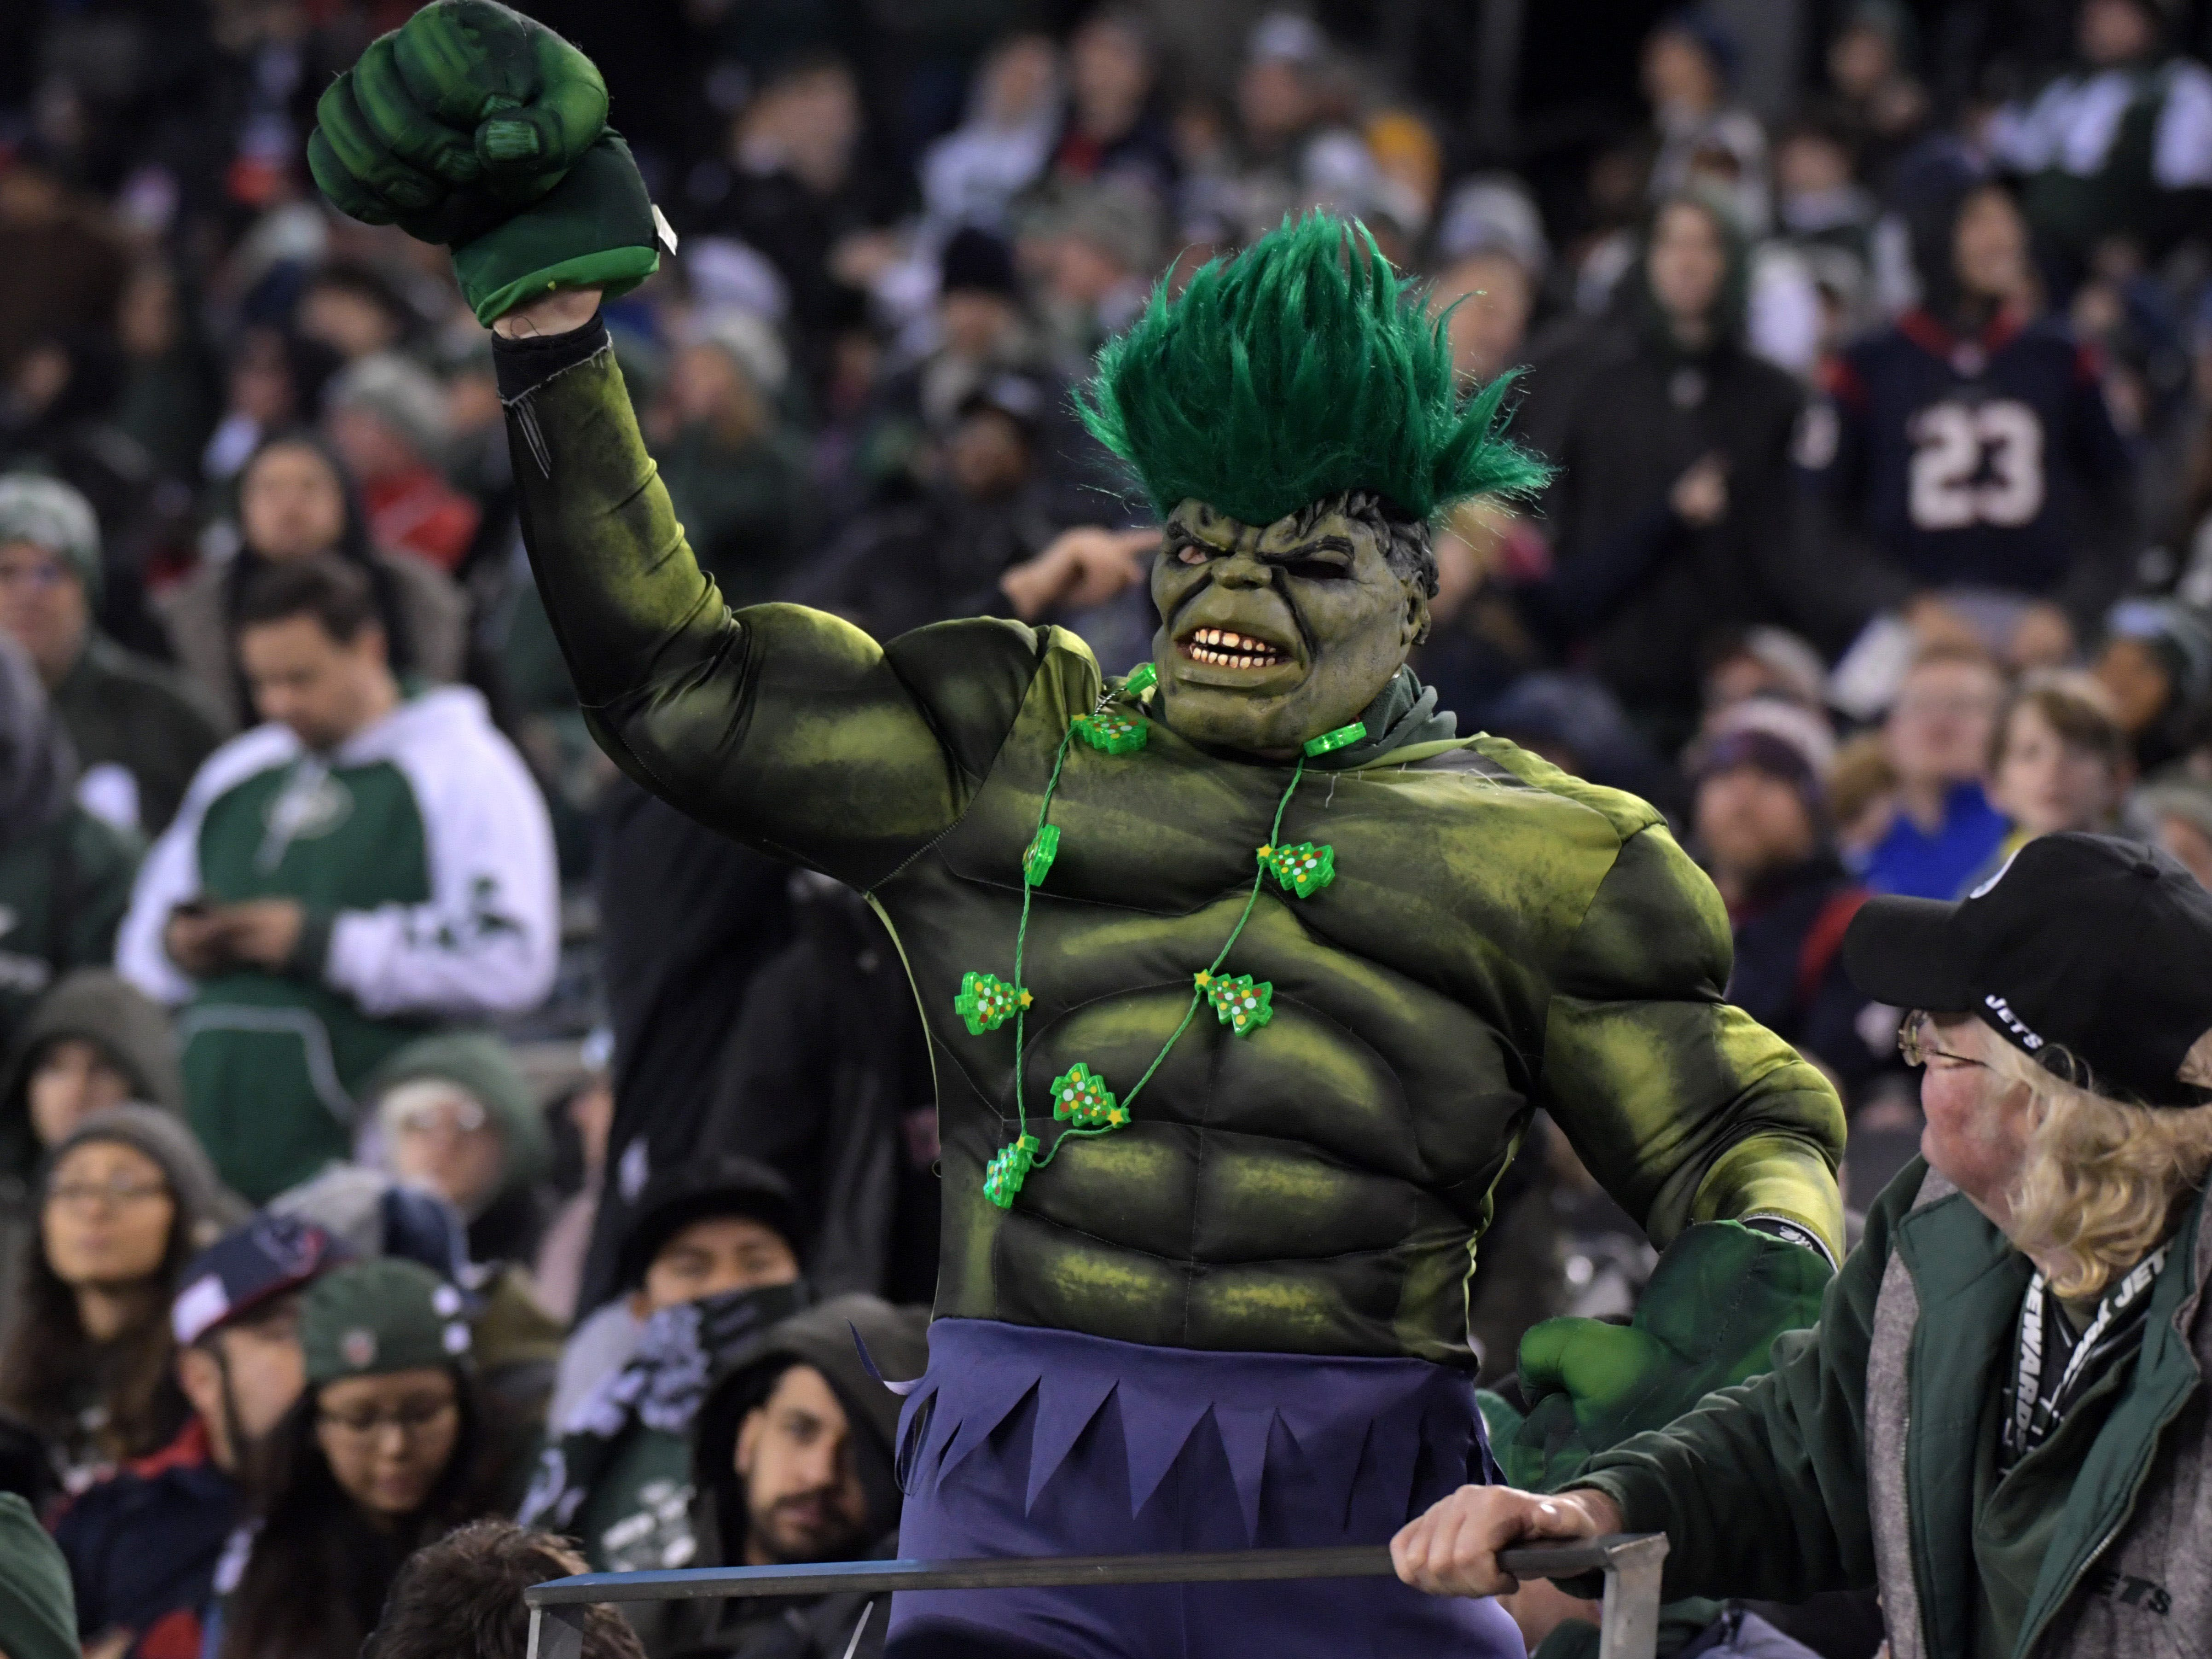 A New York Jets fan dressed as the Green Giant reacts in the fourth quarter against the Houston Texans at MetLife Stadium.